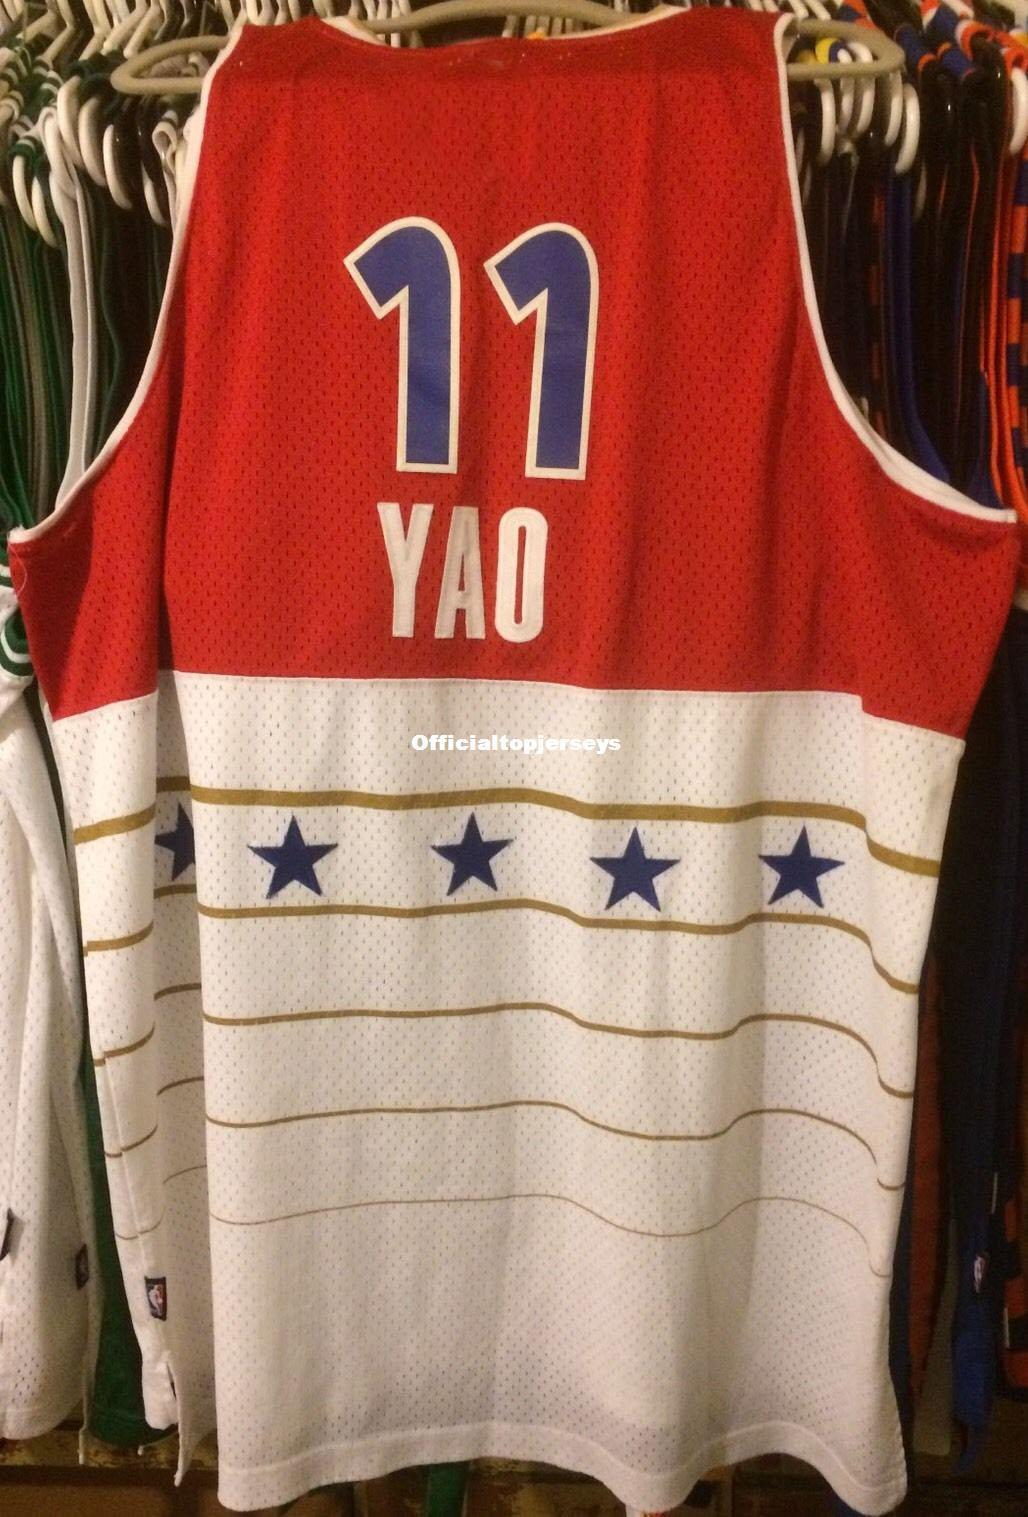 best sneakers a2c64 62d73 Cheap wholesale Yao Ming All Star Jersey 2006 RB Sewn McGrady #11 T-shirt  vest Stitched Basketball jerseys Ncaa